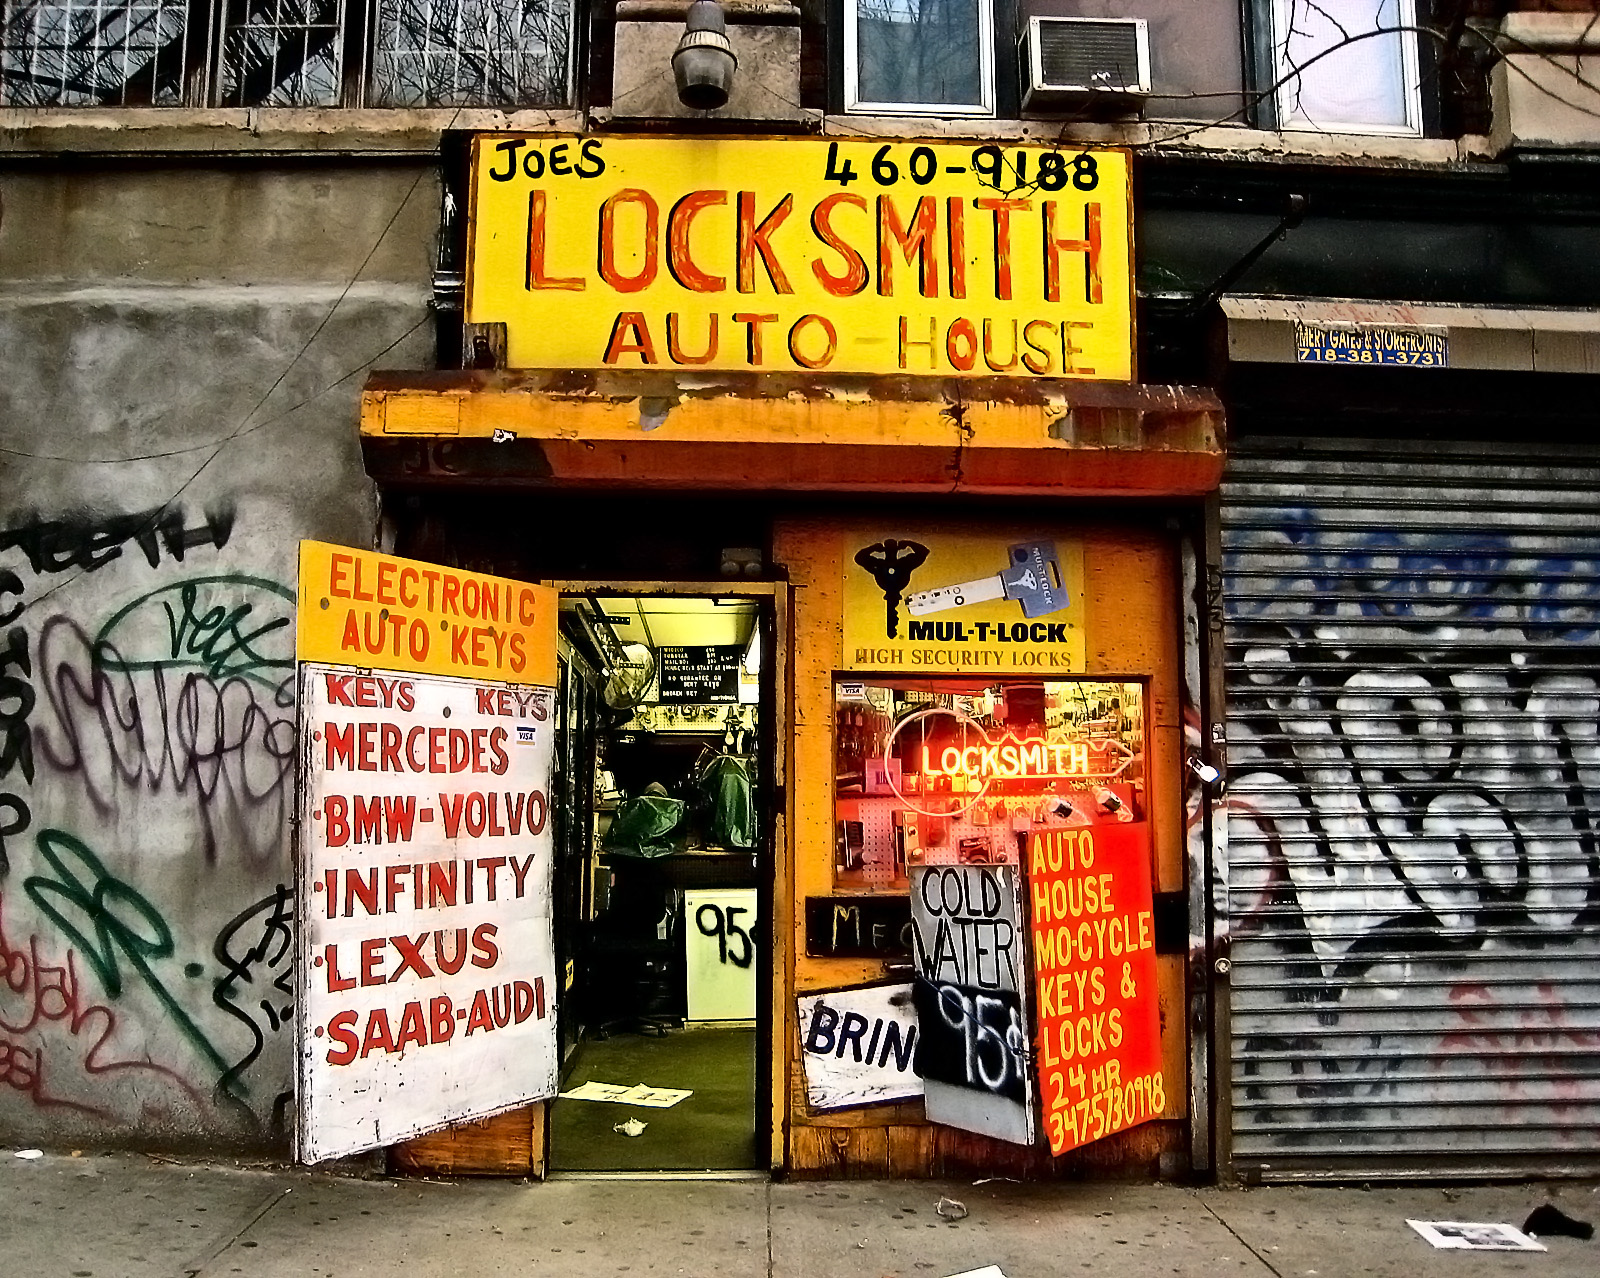 Joe's Locksmith